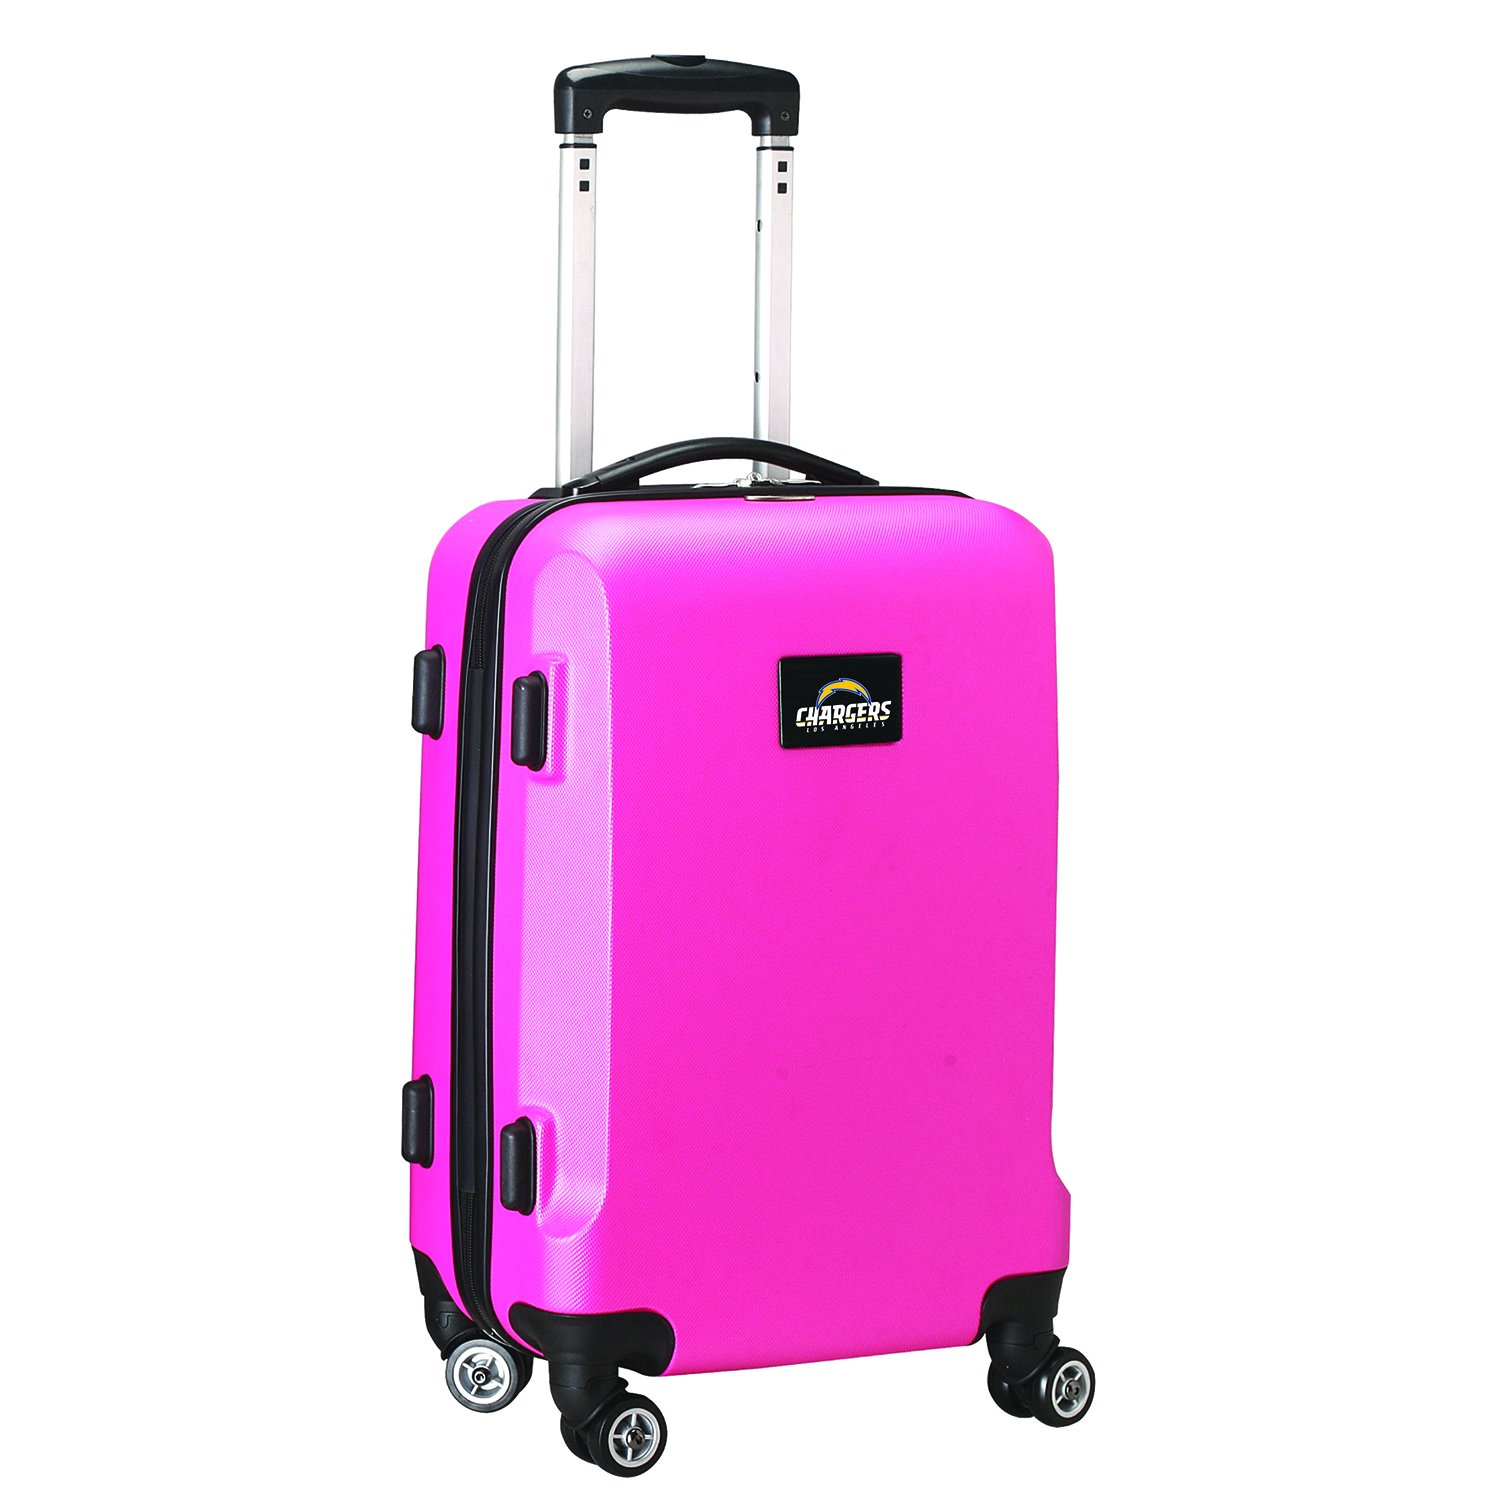 NFL Los Angeles Chargers Carry-On Hardcase Spinner, Pink by Denco